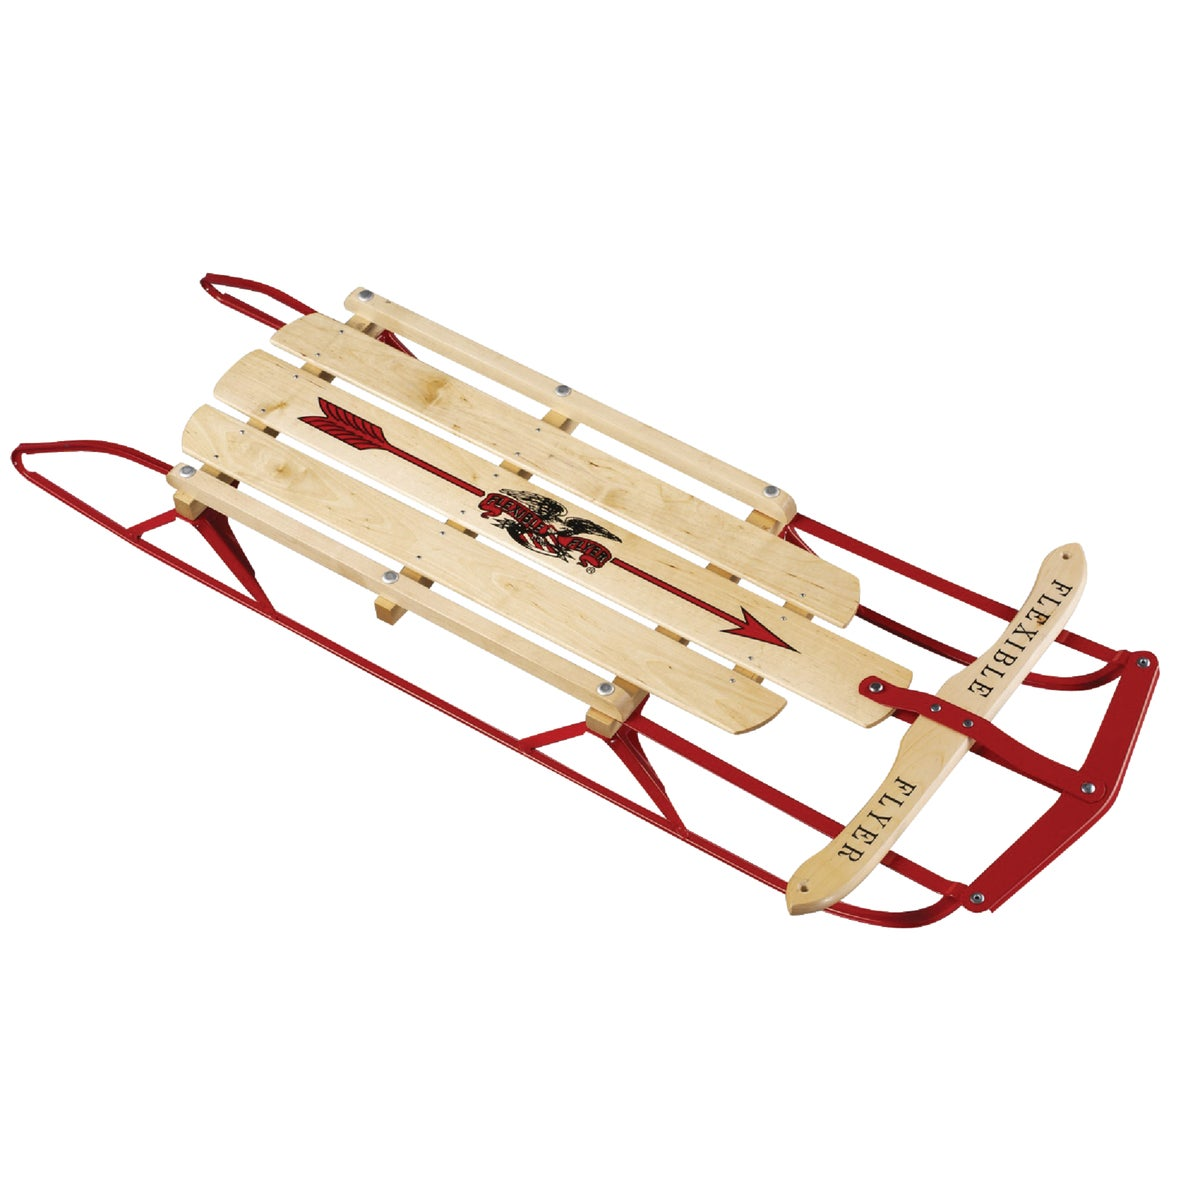 "48"" FLEXIBLE FLYER SLED - 1048 by Paricon Inc"